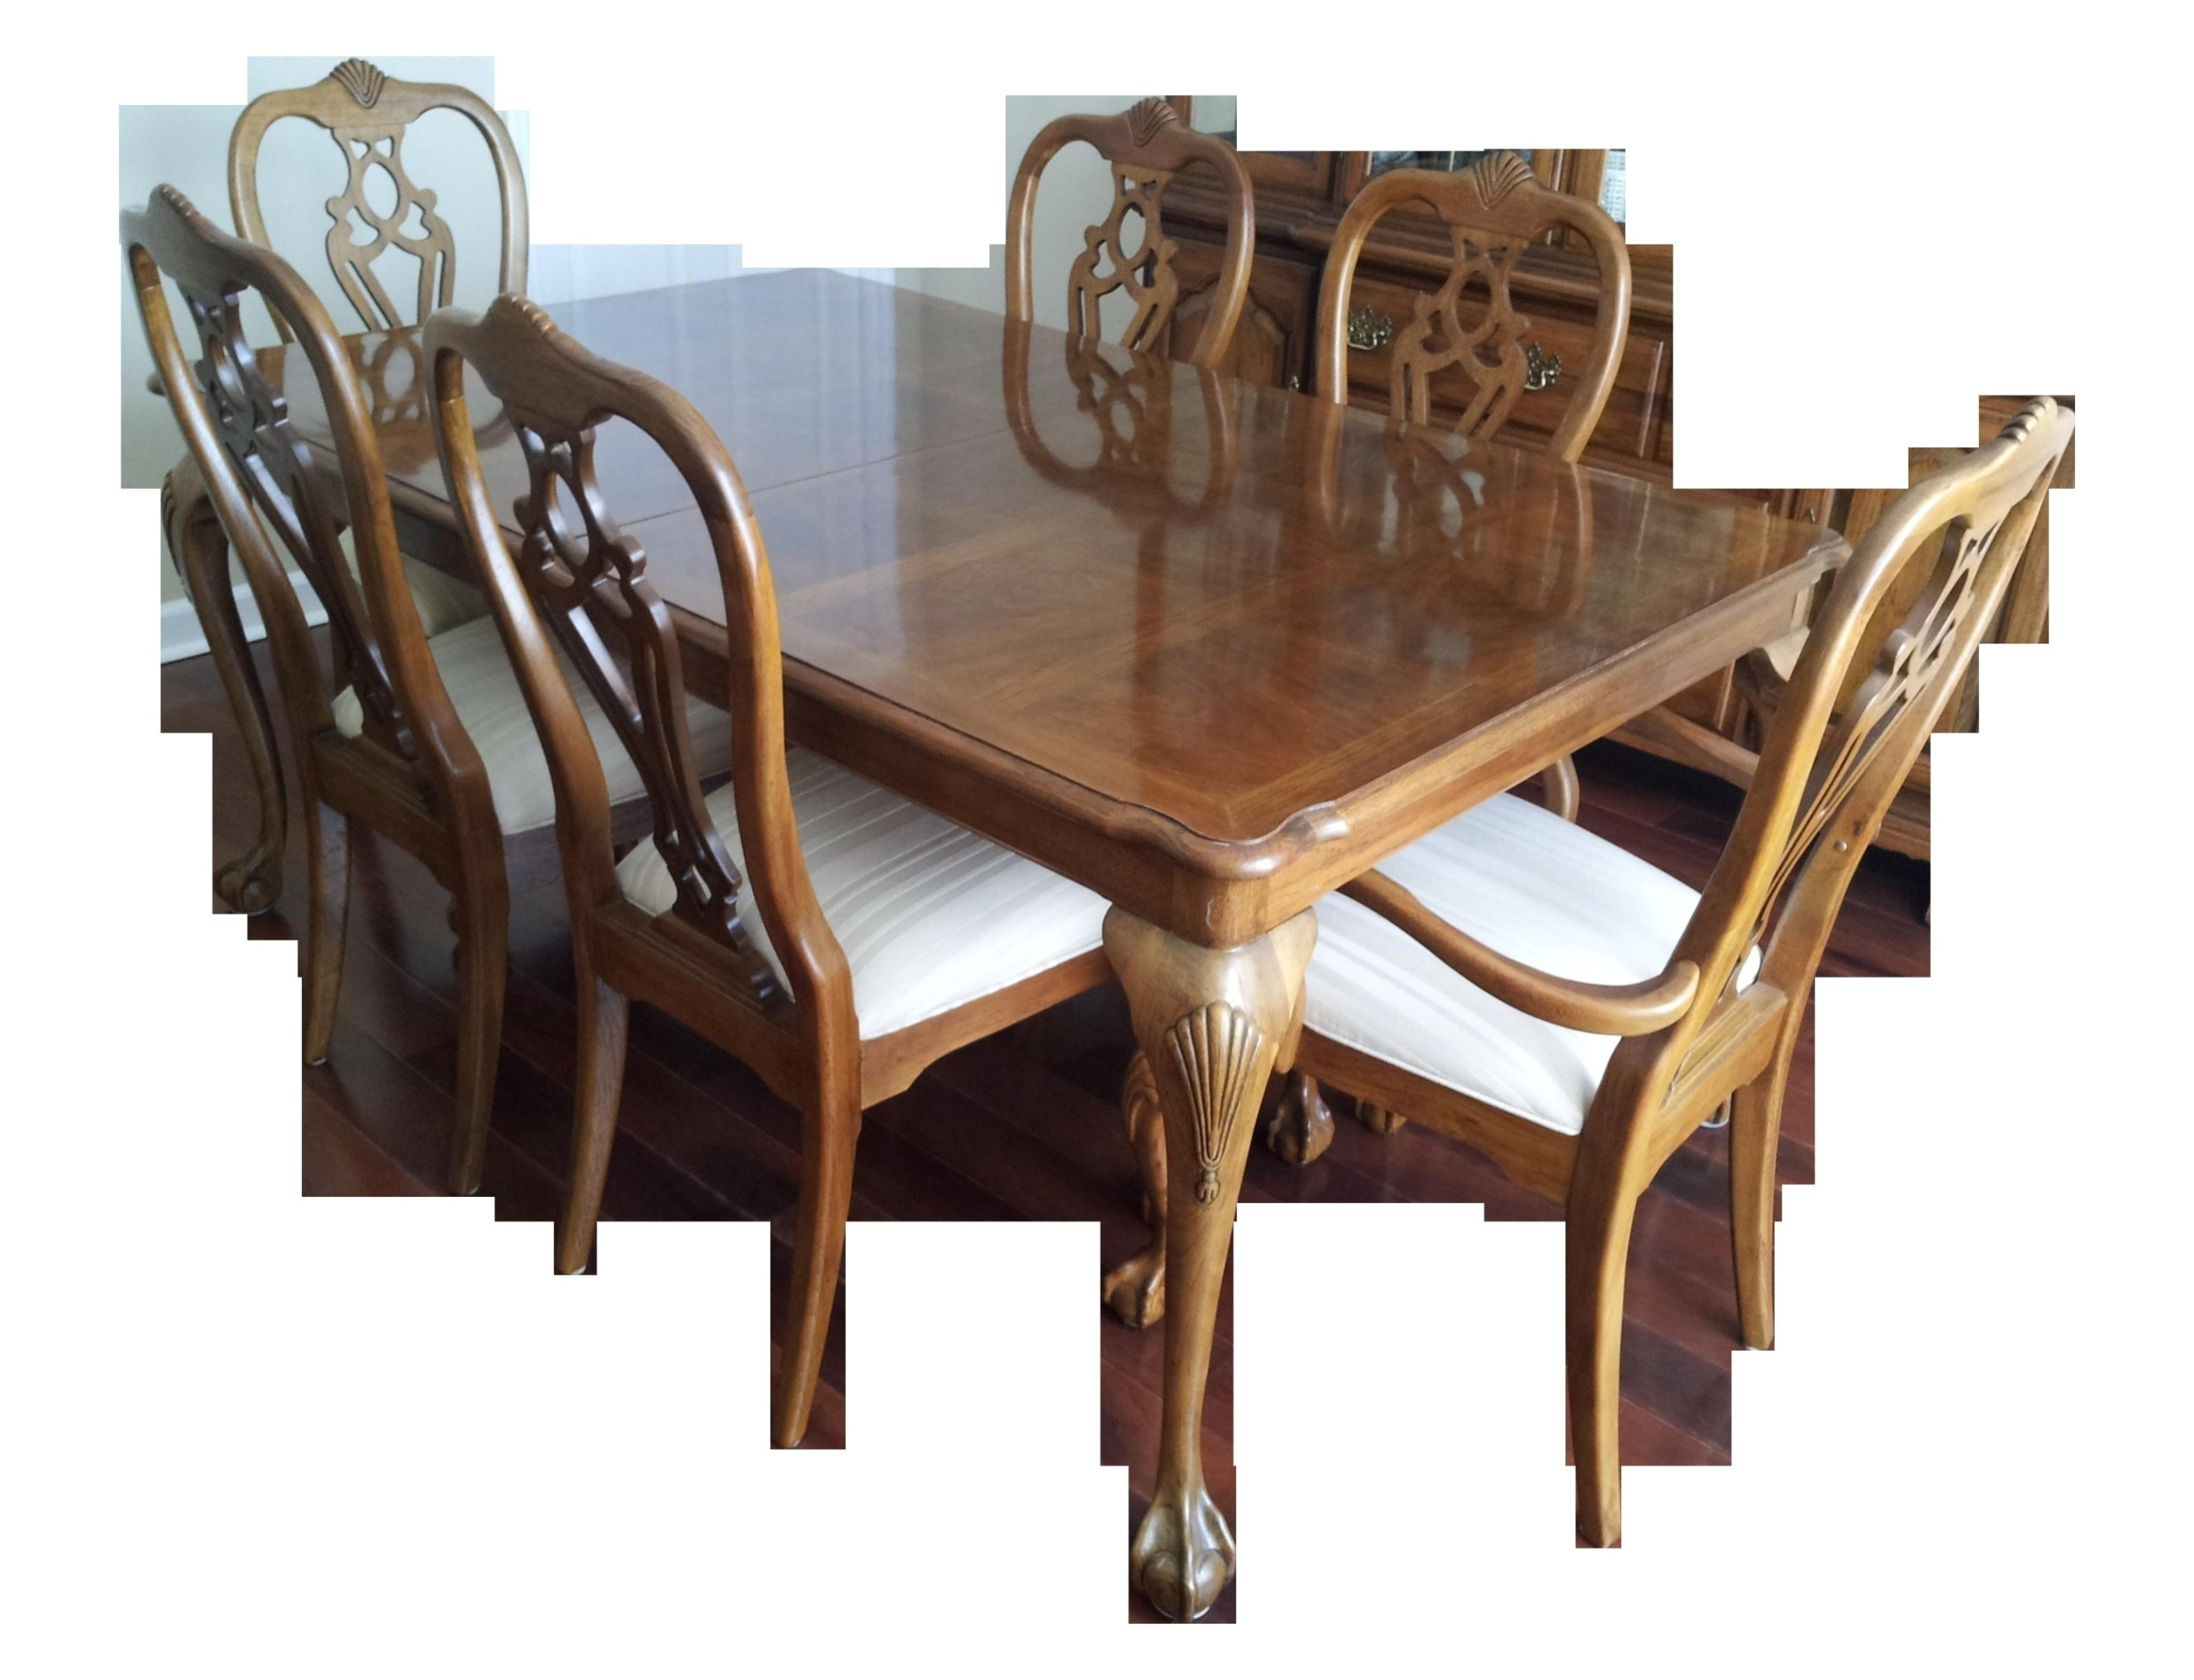 thomasville dining room chairs discontinued | Discontinued Thomasville Furniture Collections | AdinaPorter